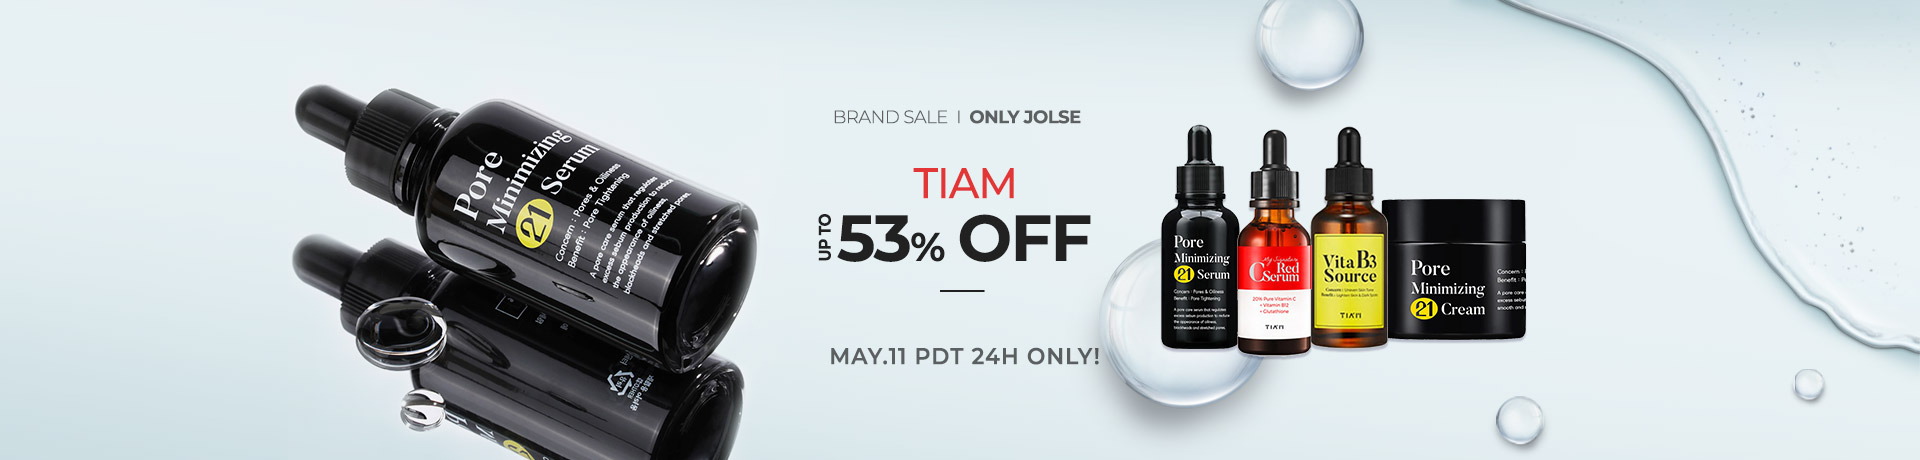 TIAM Up to 53% OFF